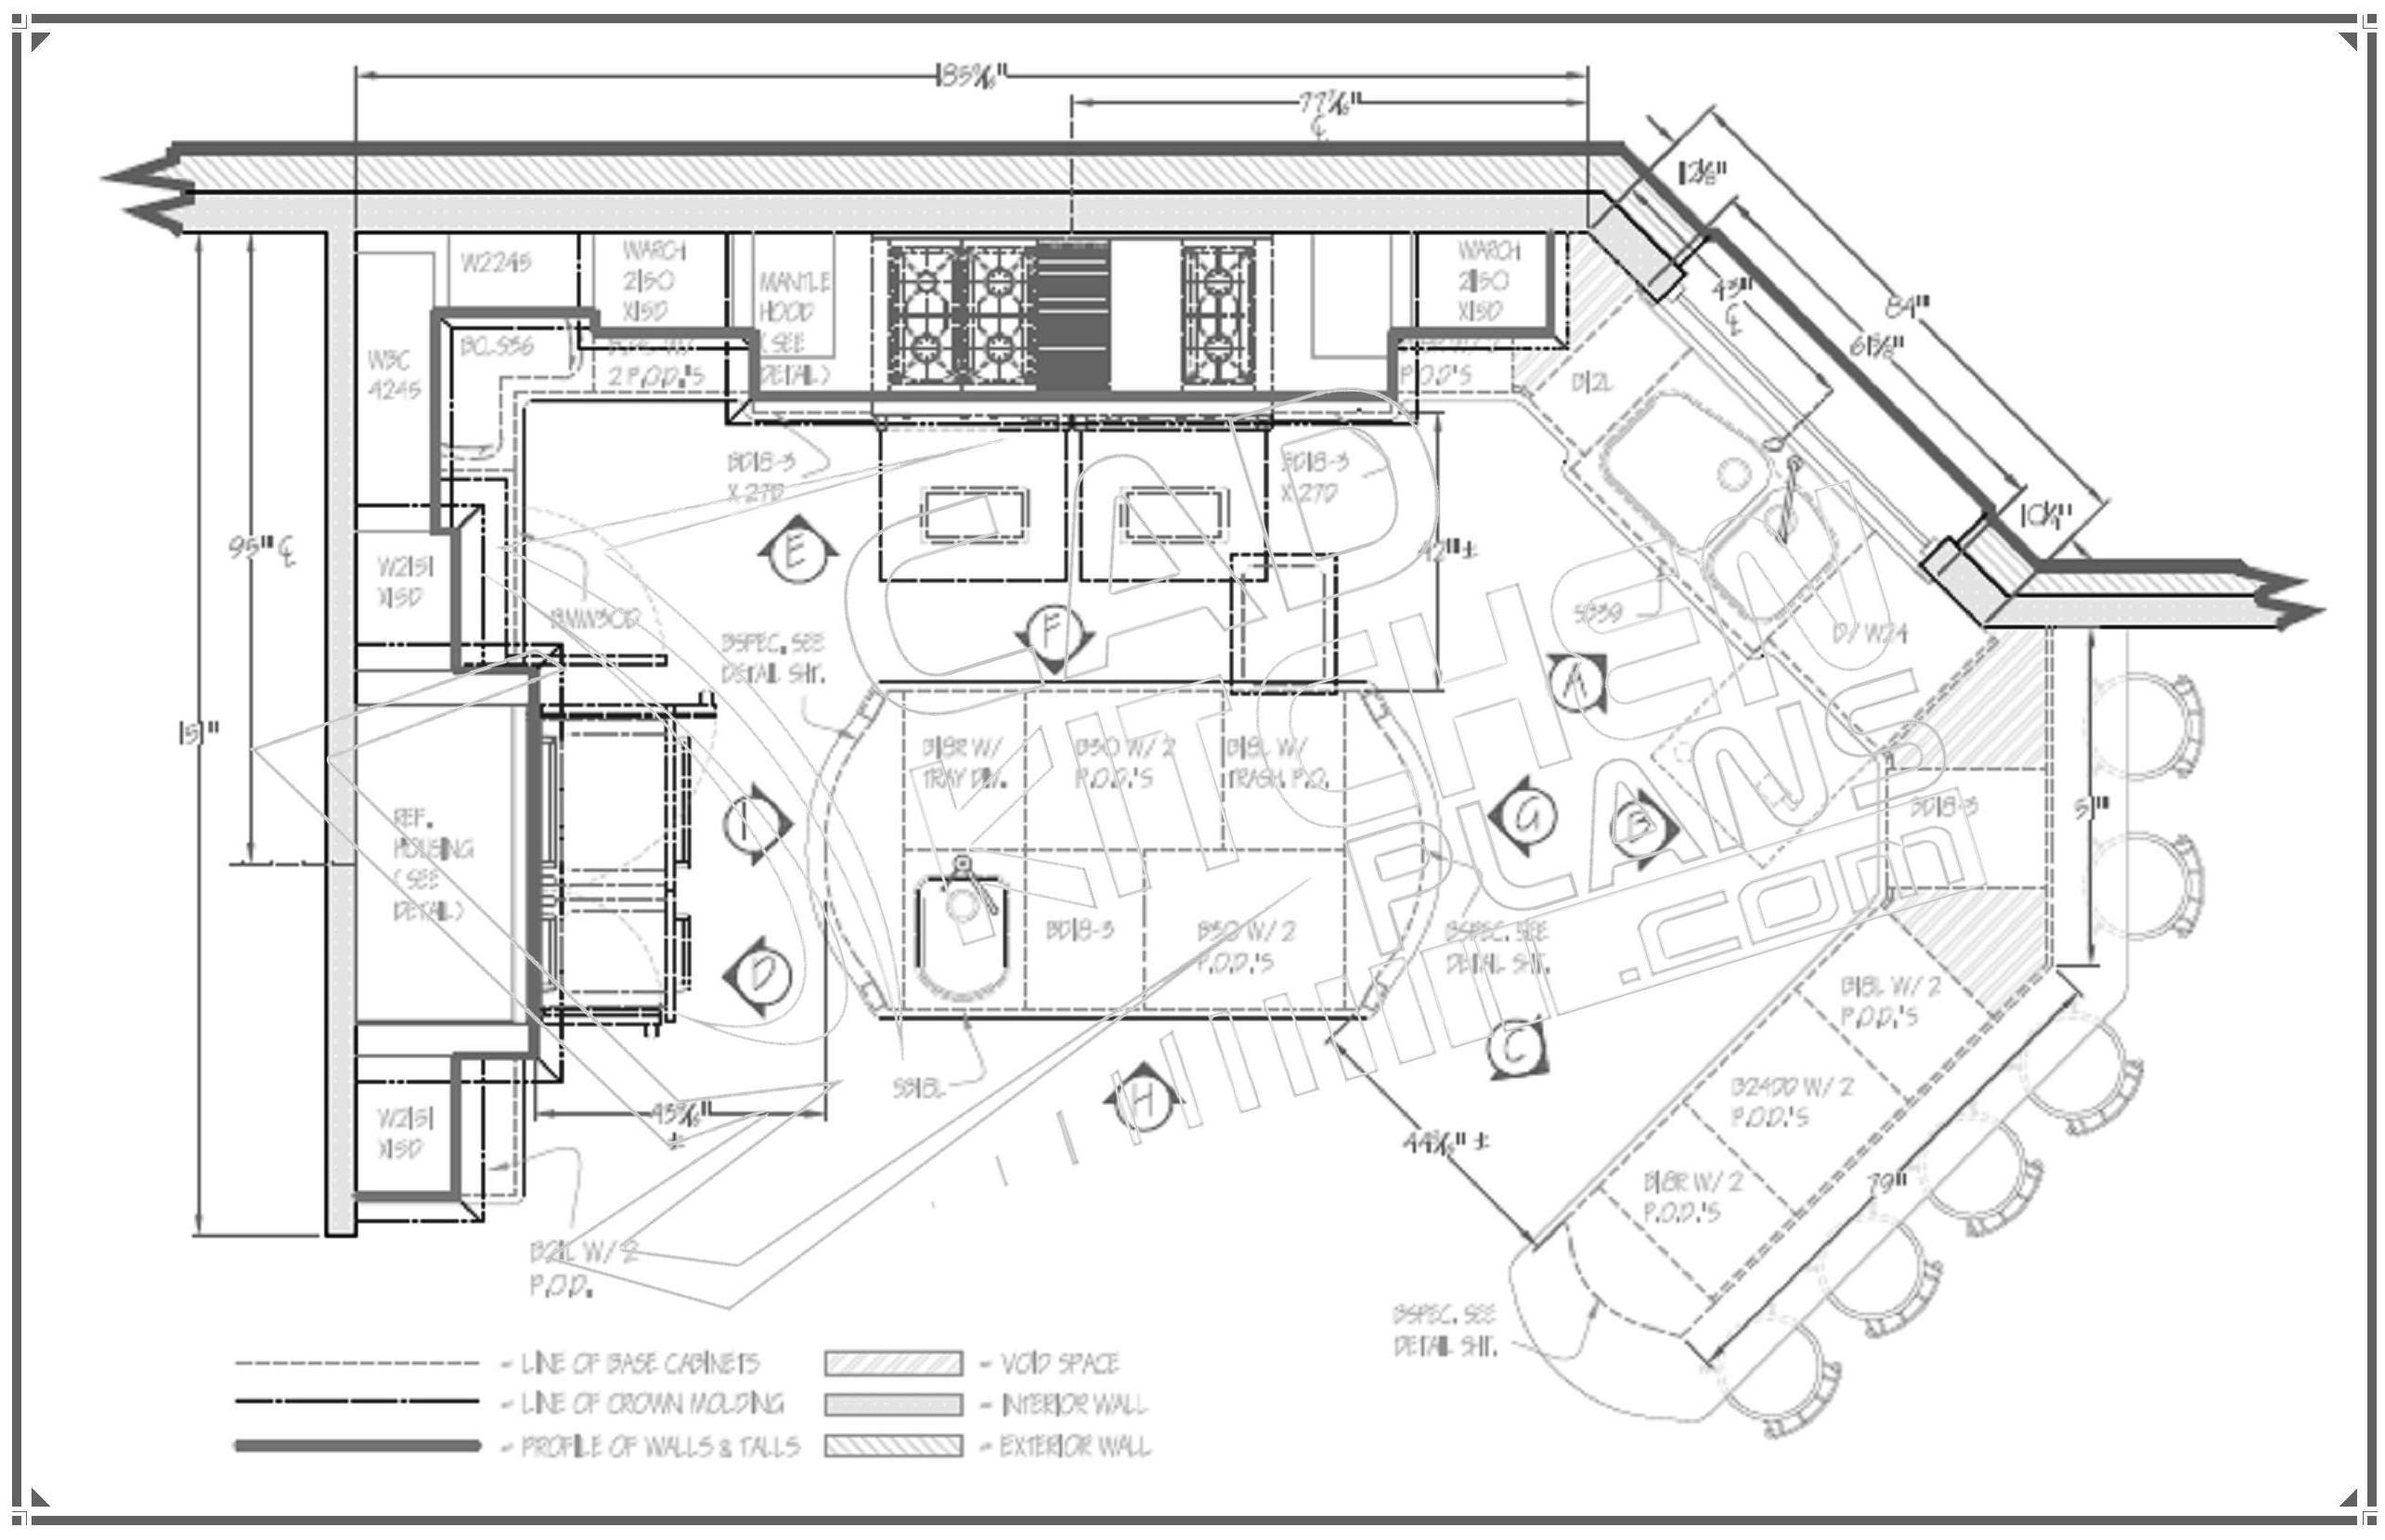 Floor Plans Kitchen Kitchenideas Floor Plans Kitchen Kitchen Zones Efficient Kitchen Layout Kitchen Floor Plans Small Kitchen Floor Plans Kitchen Plans